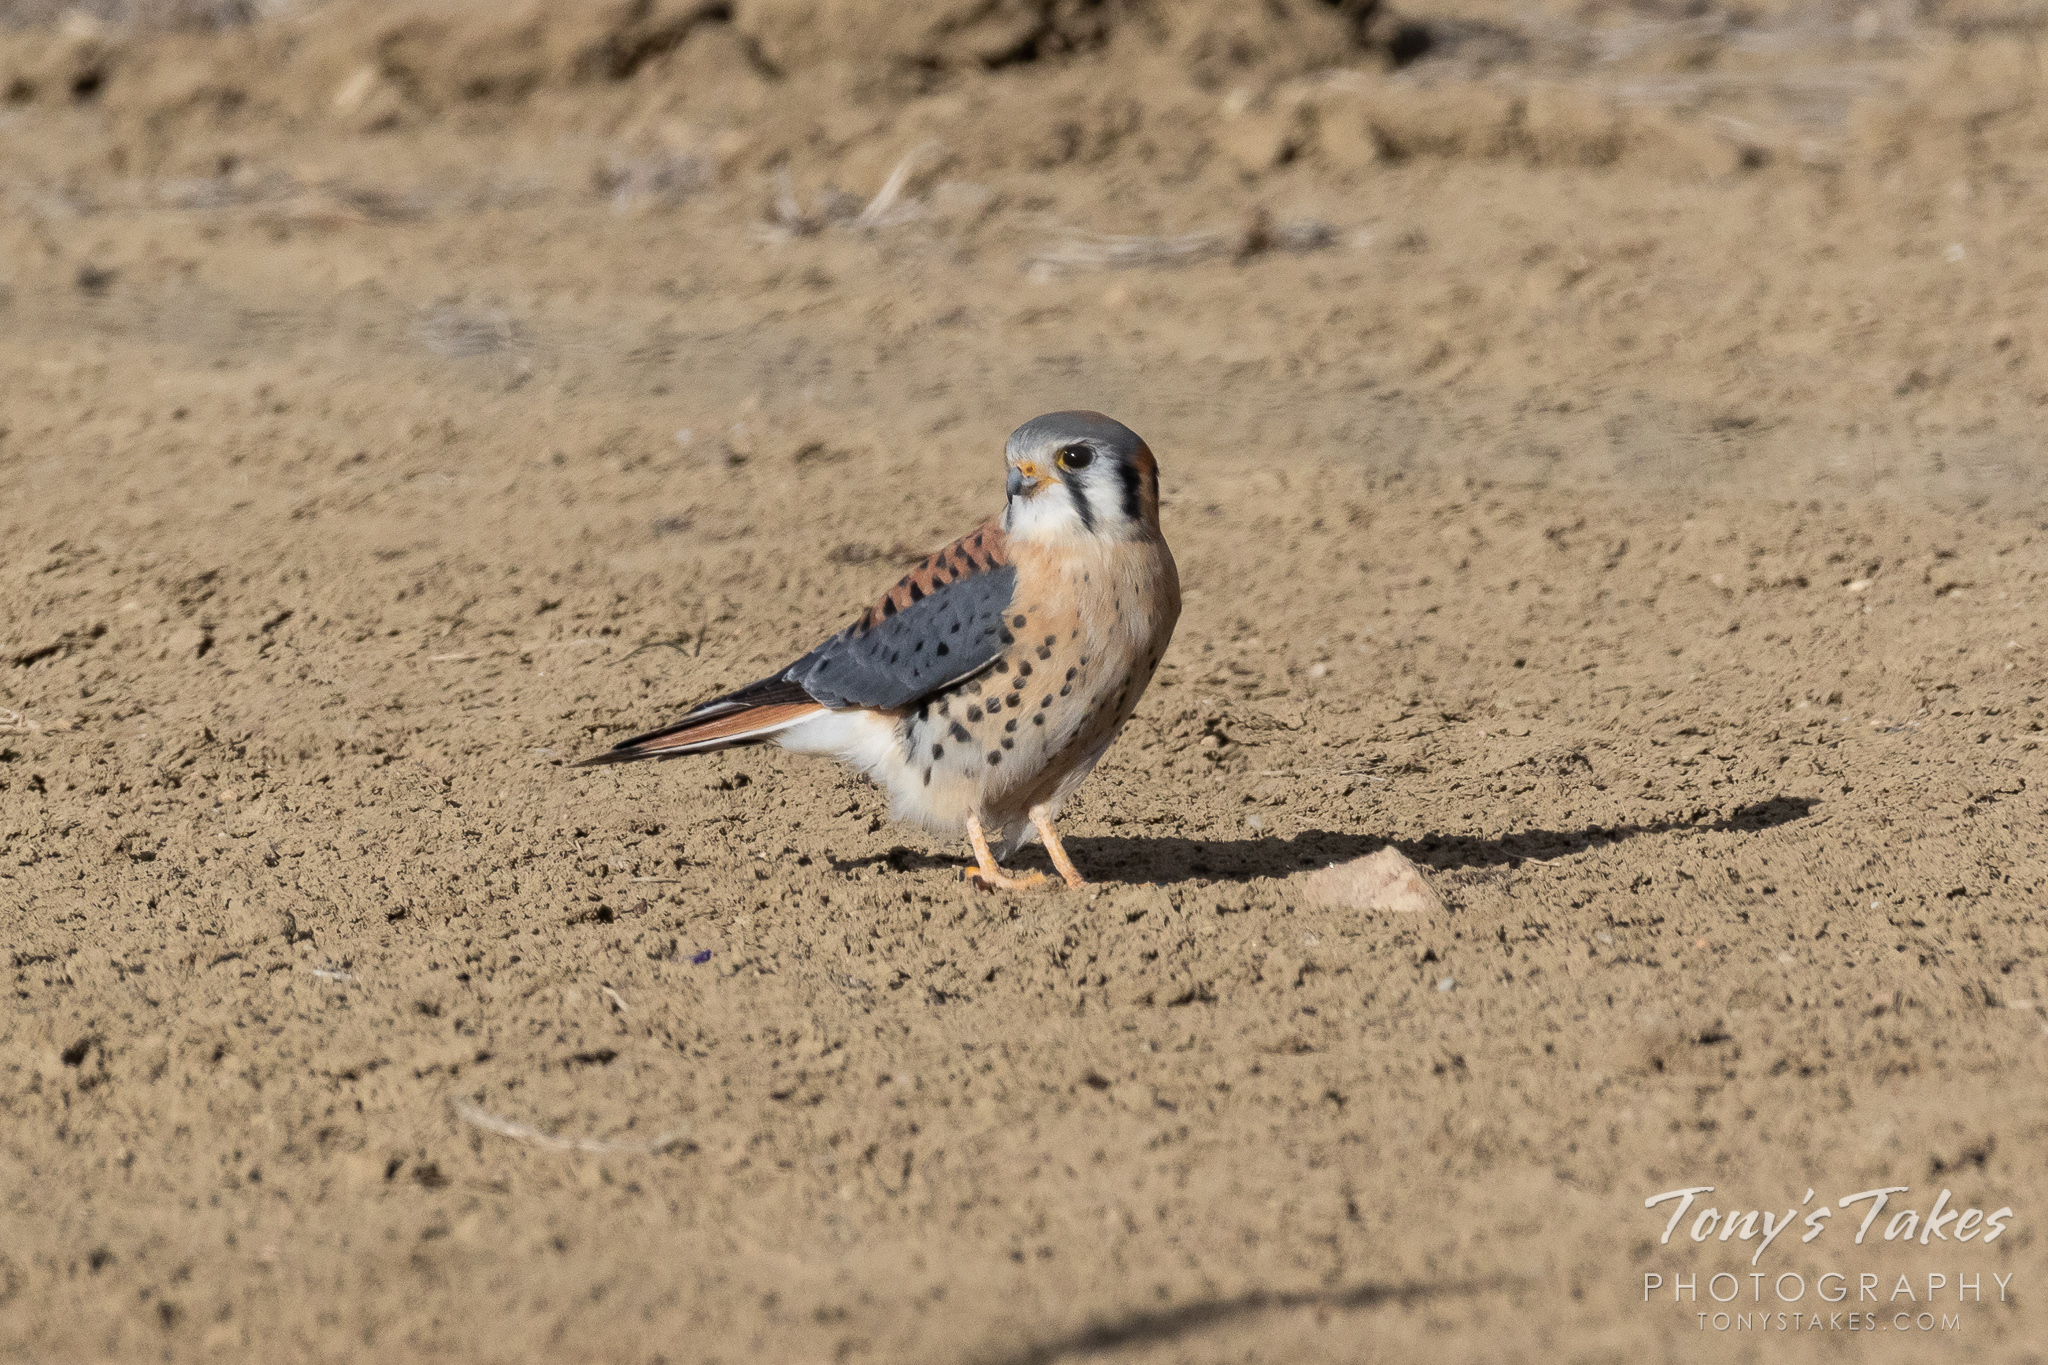 A male American kestrel hangs out on the ground in northern Colorado. (© Tony's Takes)